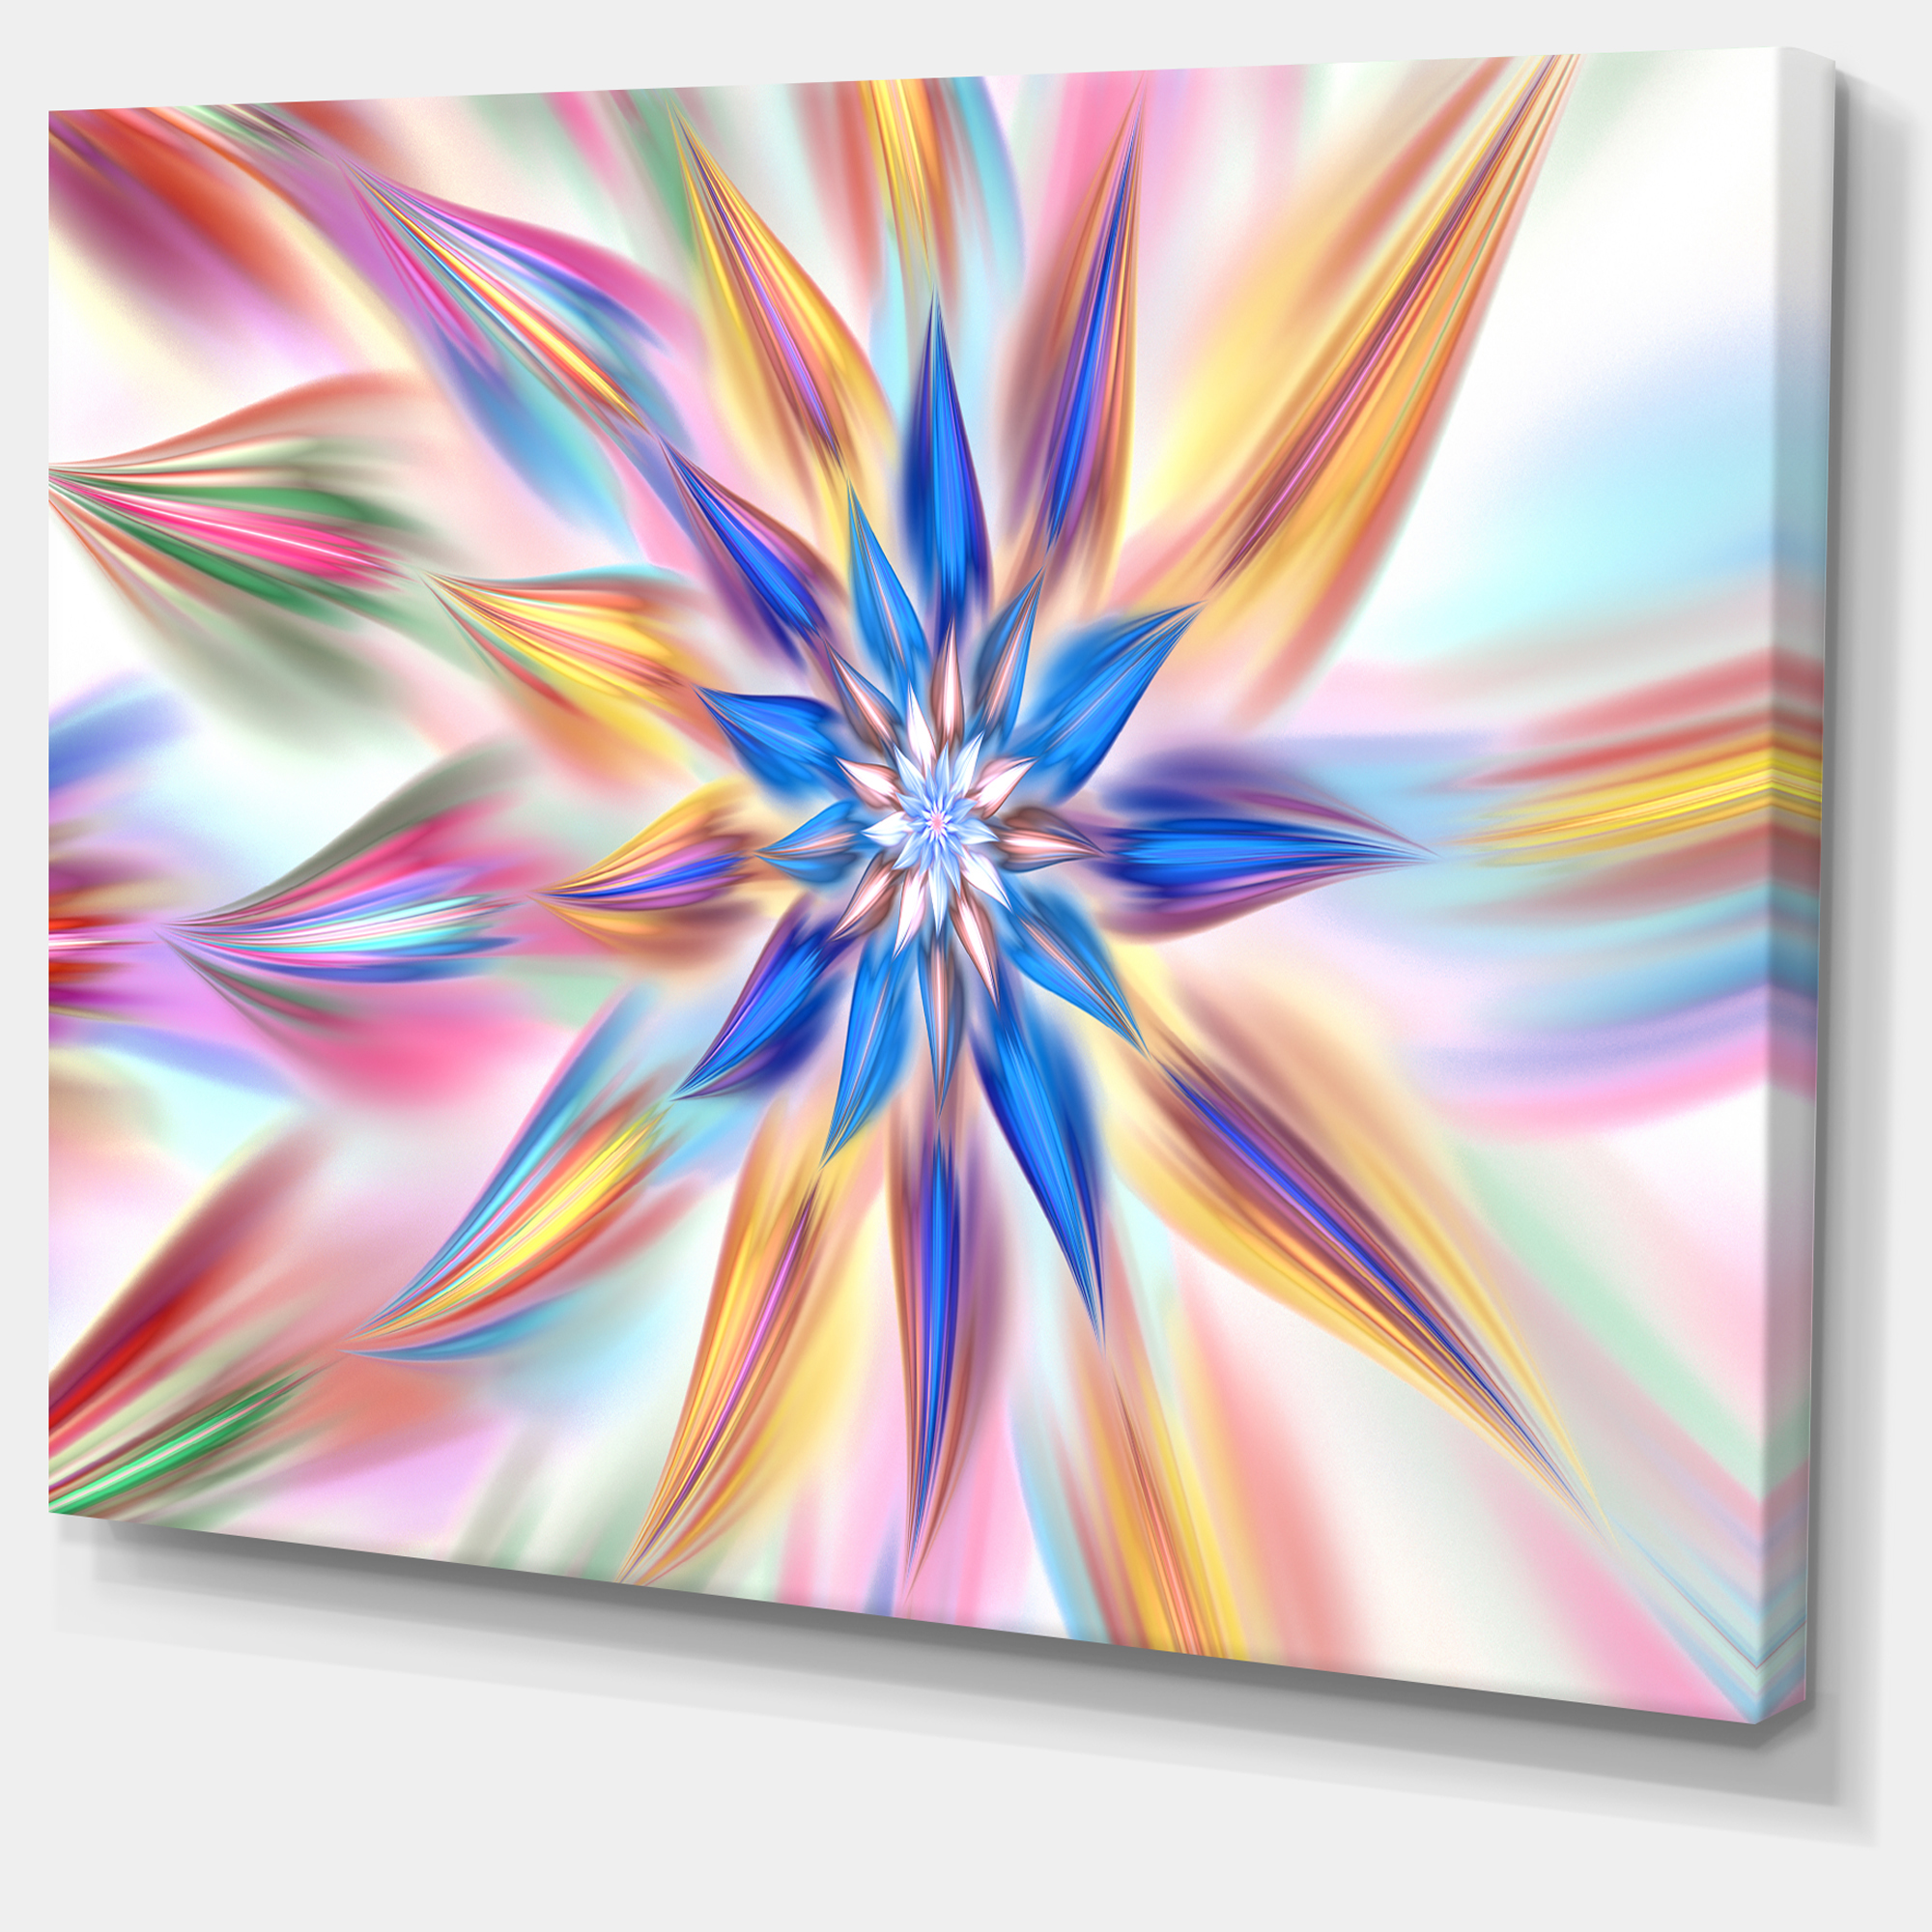 Exotic Dance of Multi Color Petals - Floral Canvas Art Print - image 2 of 4